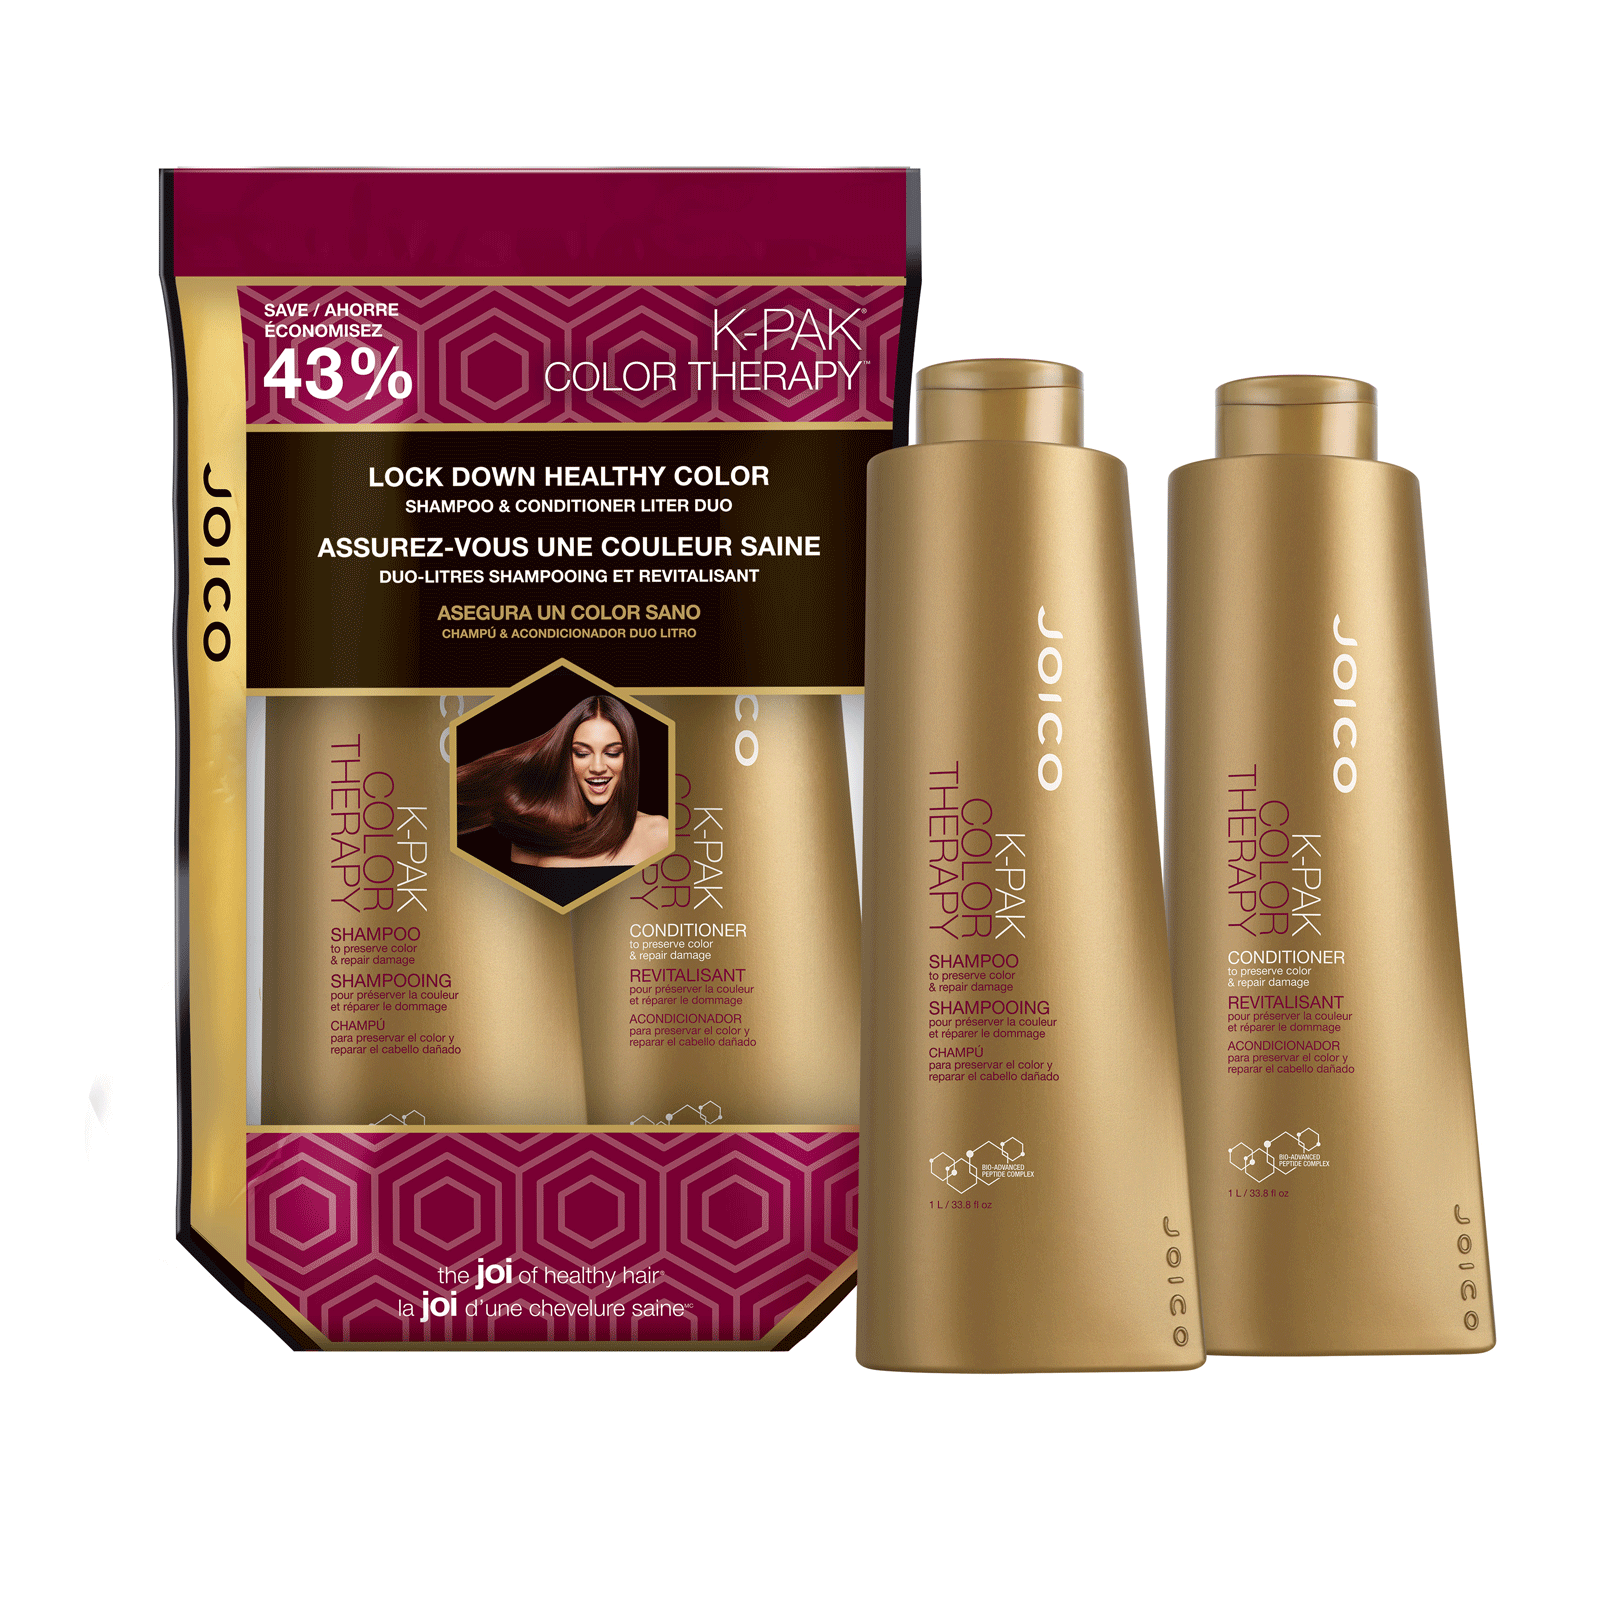 K-PAK Color Therapy Shampoo & Conditioner Liter Duo - Joico ...